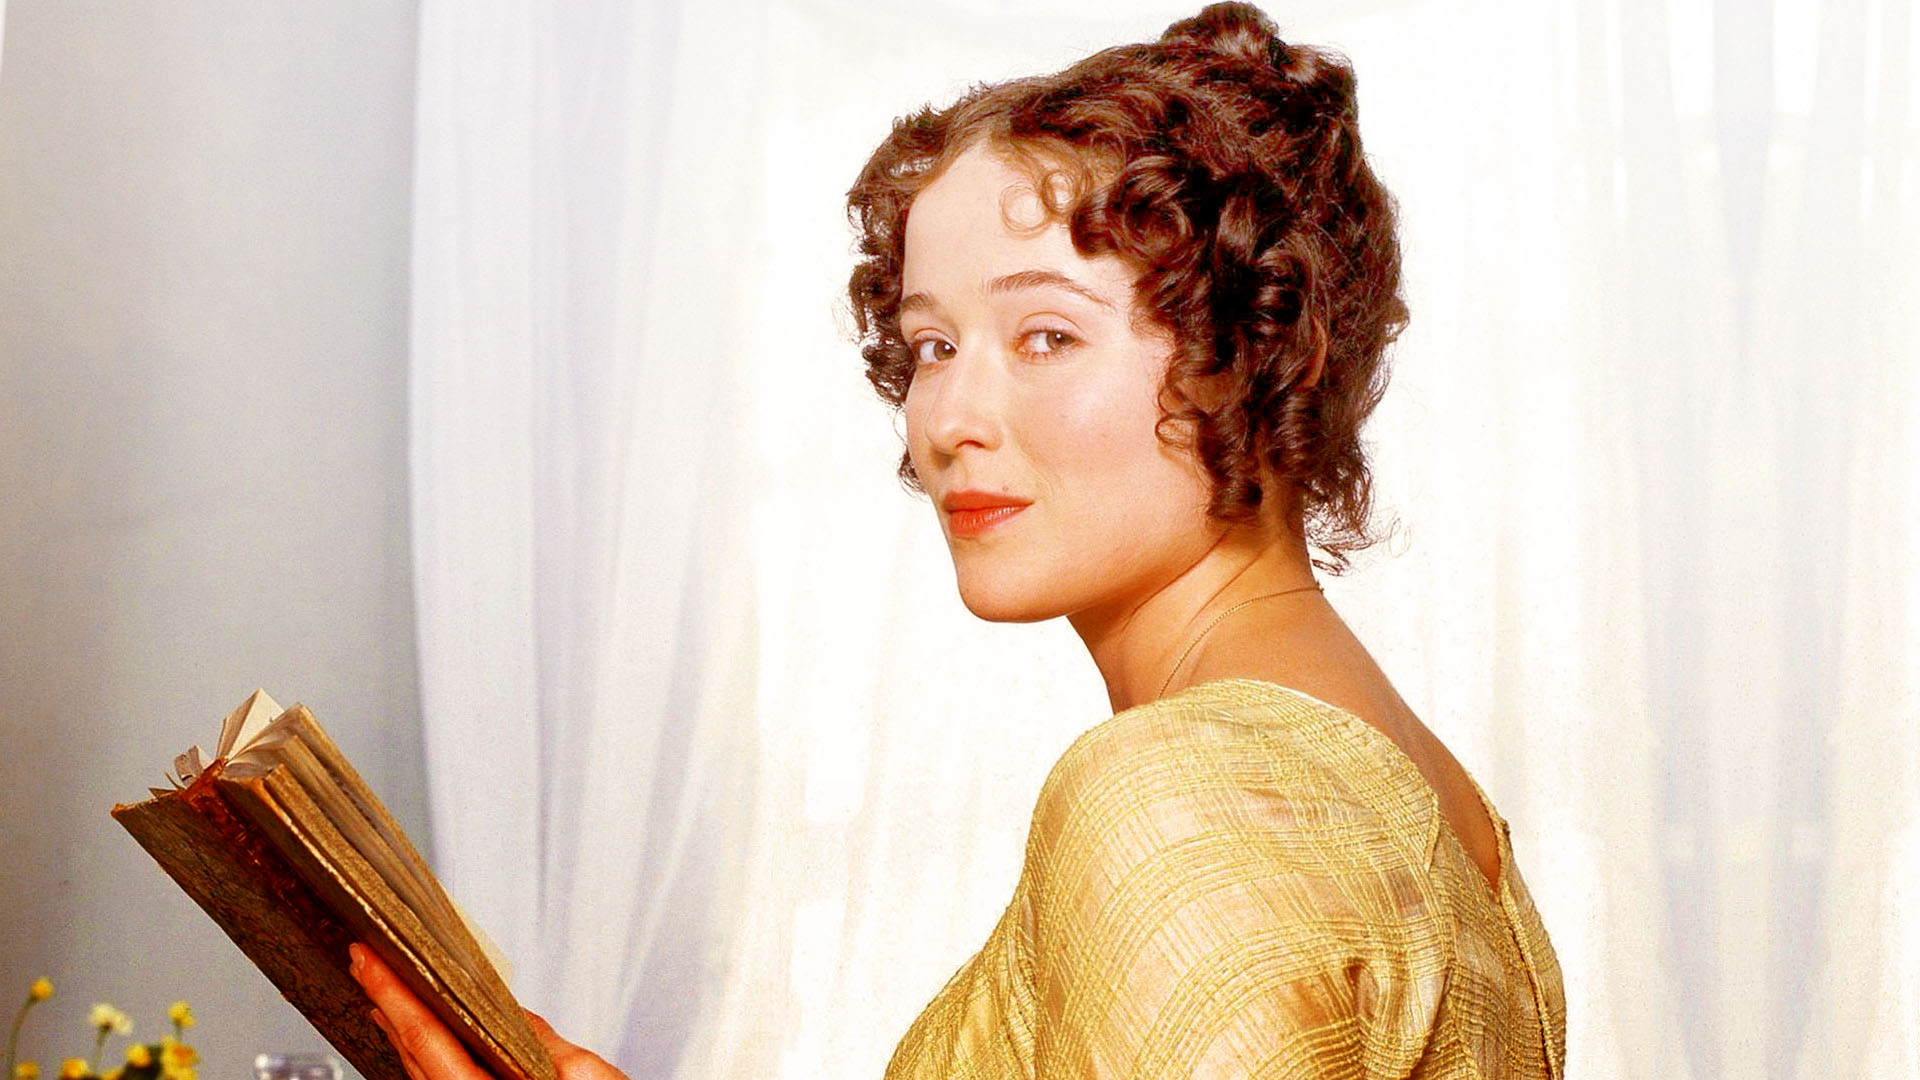 the pride and prejudice of elizabeth bennet in the novel pride and prejudice by jane austen In this extract from austen's classic novel, the bennet sisters' long suffering father stands up to his wife  pride and prejudice by jane austen  elizabeth.